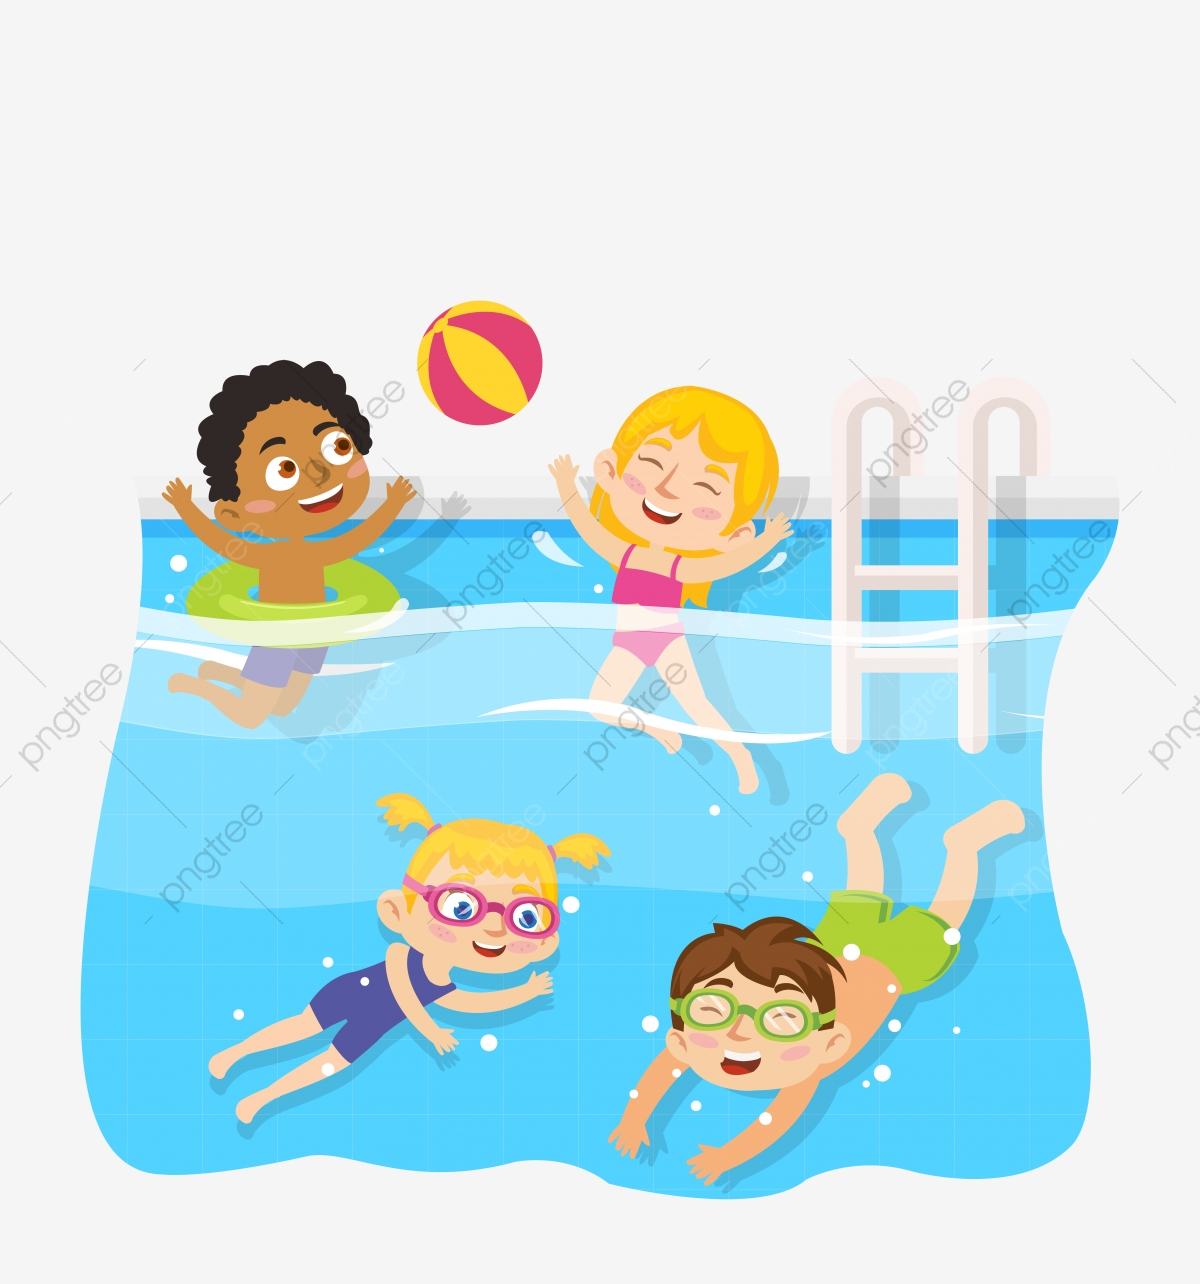 Kid Swimming Pool, Children Swimming, Learning To Swim, Children On.